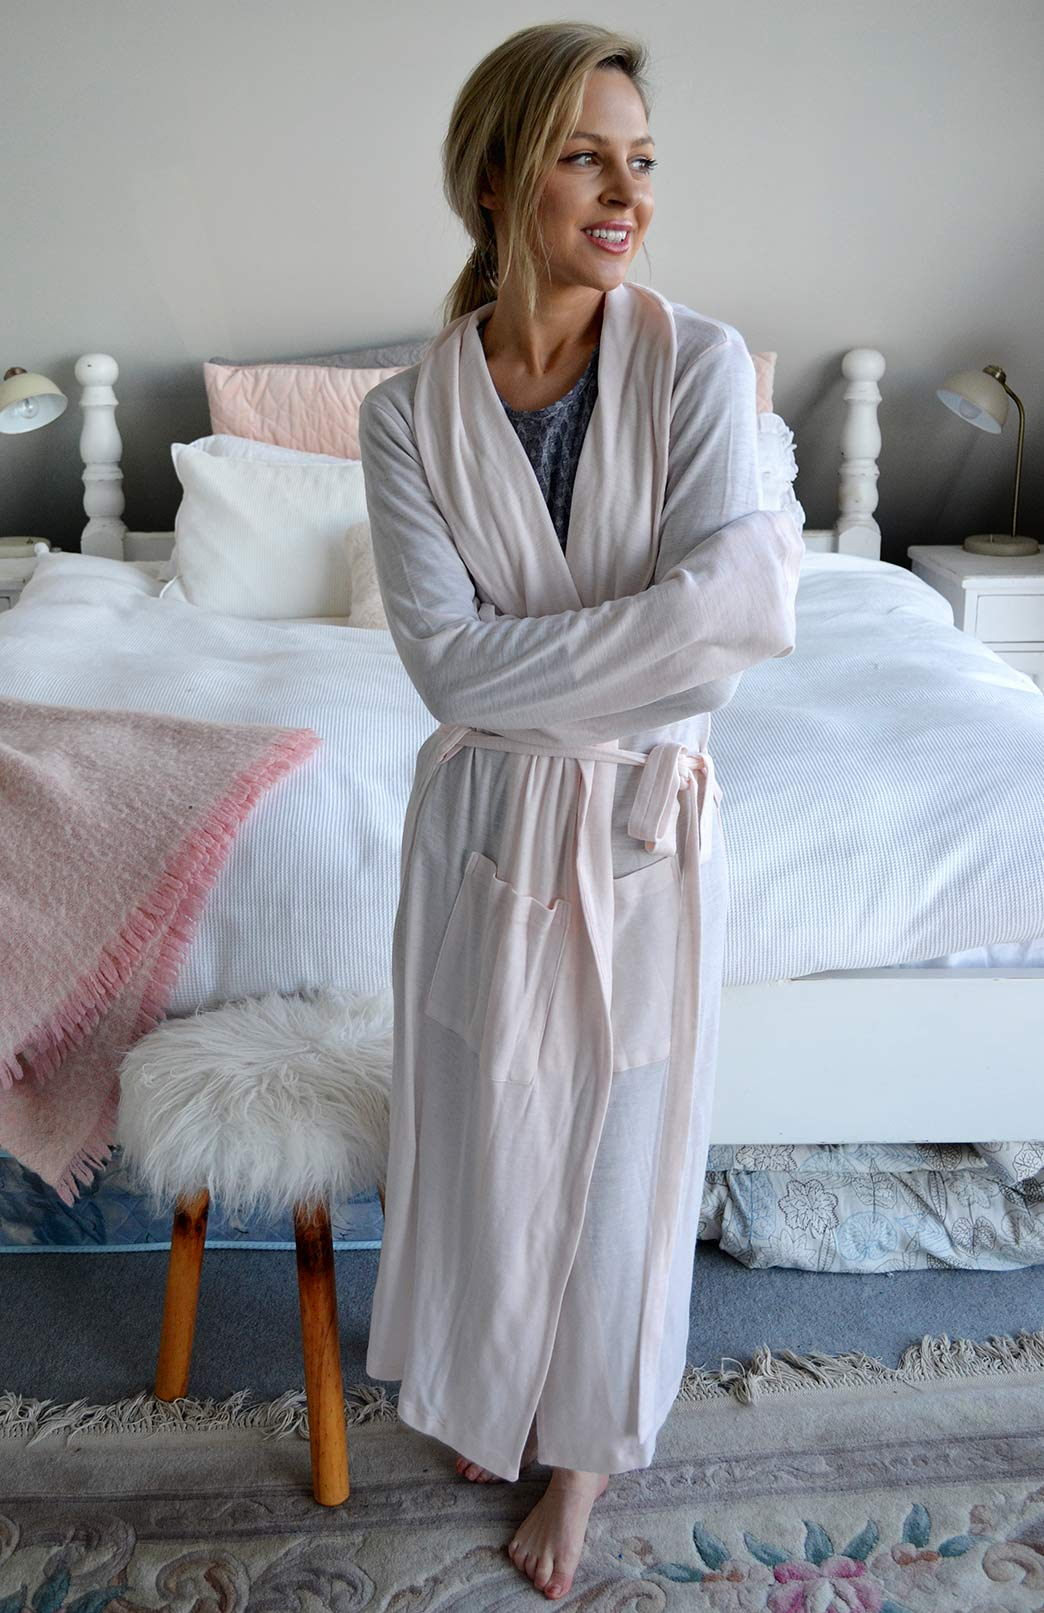 Dressing Gown - Women's Soft Pink Superfine Merino Wool Dressing Gown with Tie and Side Pockets - Smitten Merino Tasmania Australia